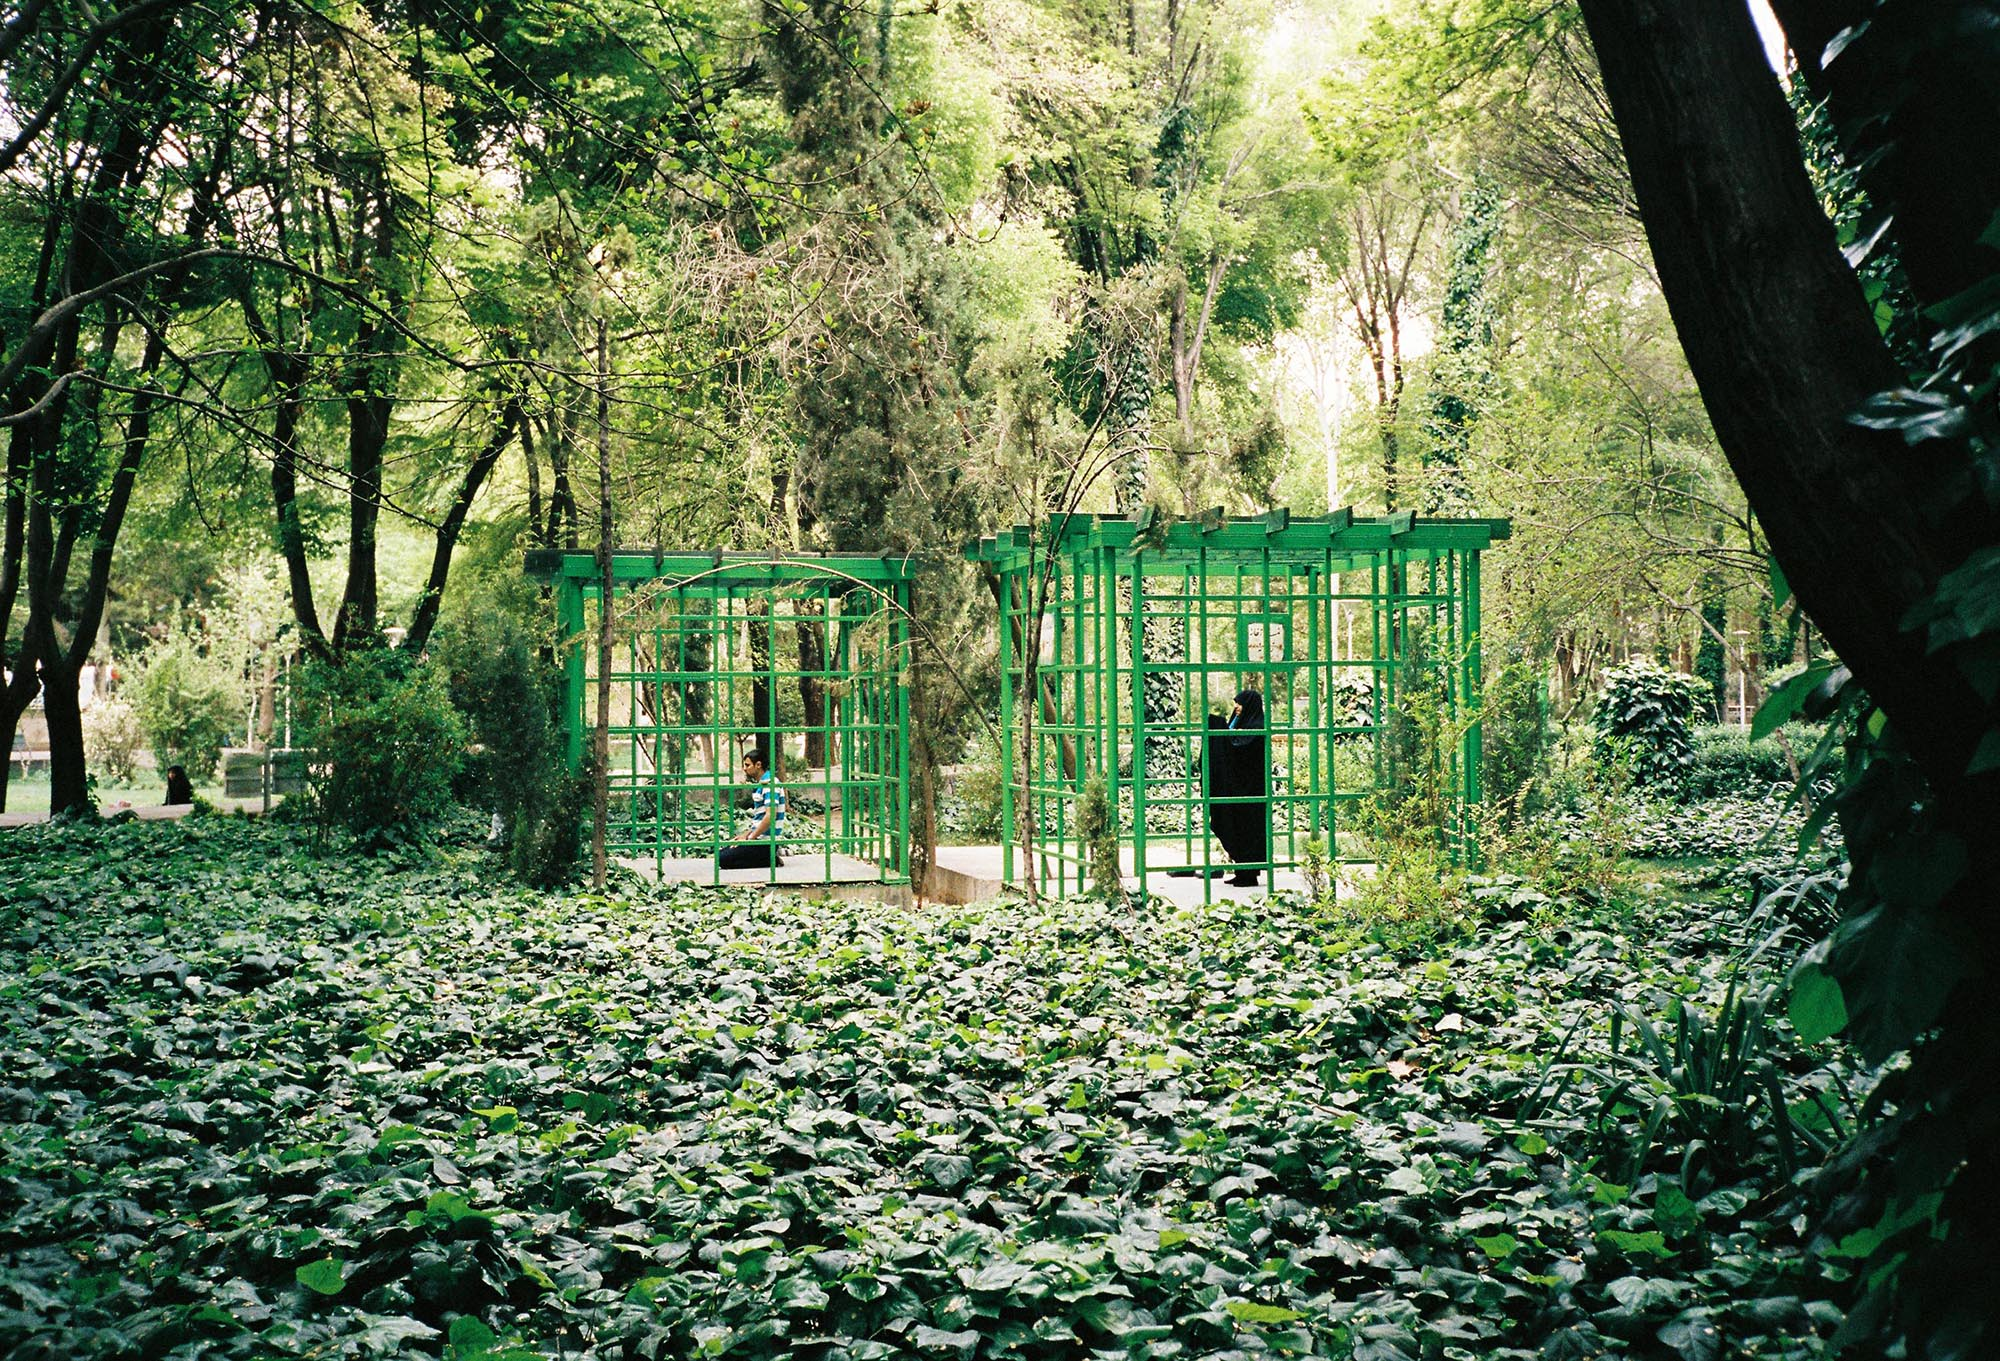 Muslims praying in cage structures in a public garden. Isfahan, Iran, 2017 © Laure d'Utruy